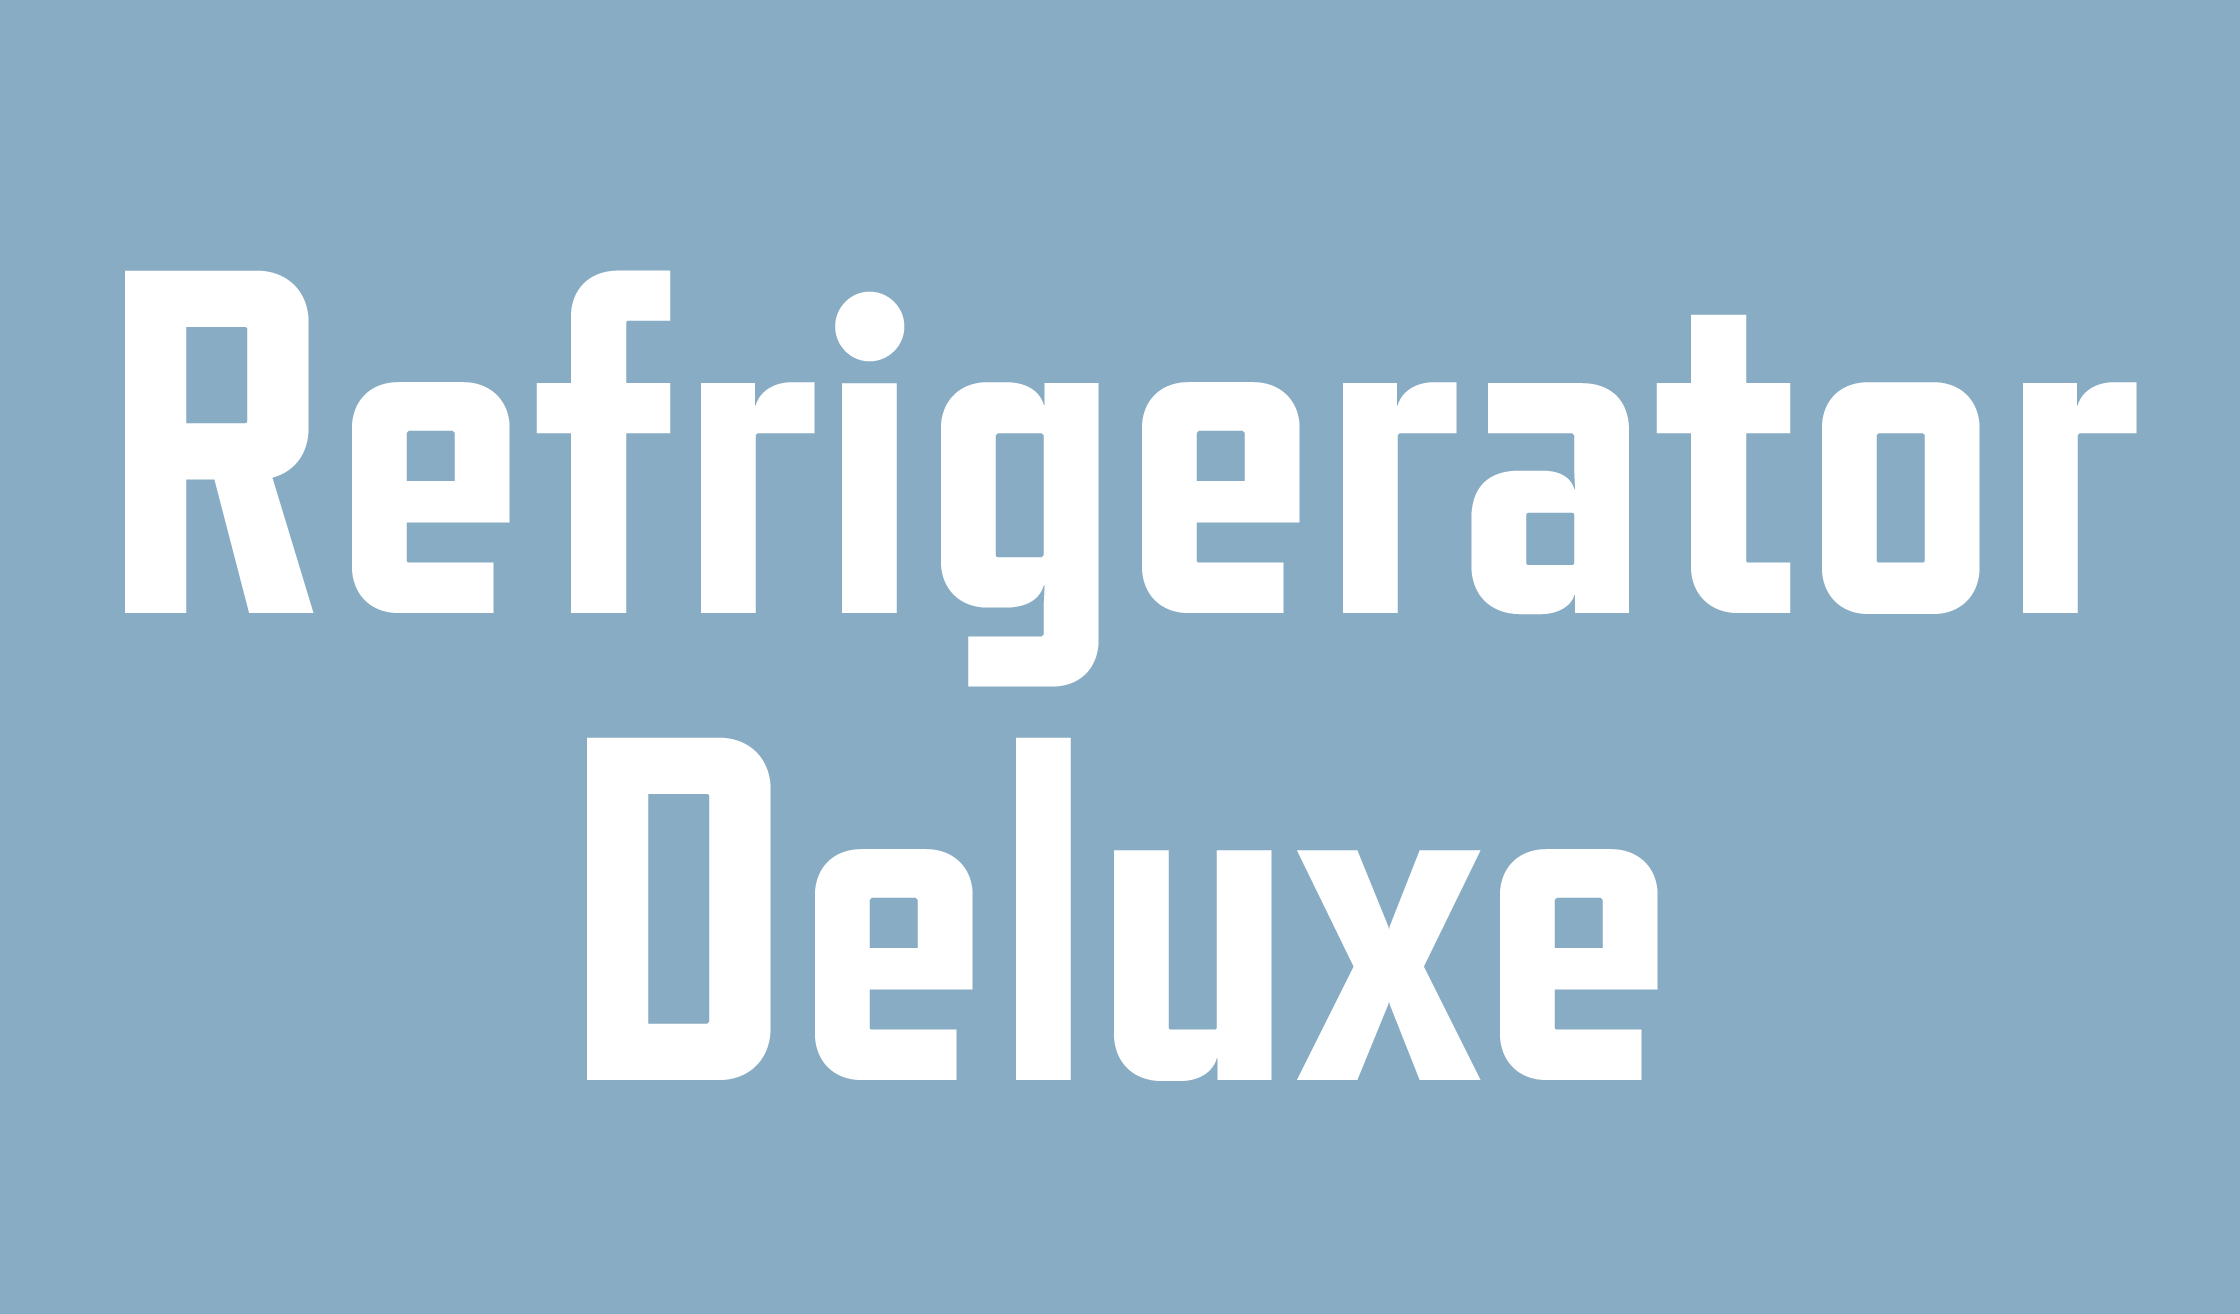 Refrigerator Deluxe Banner Name 2240